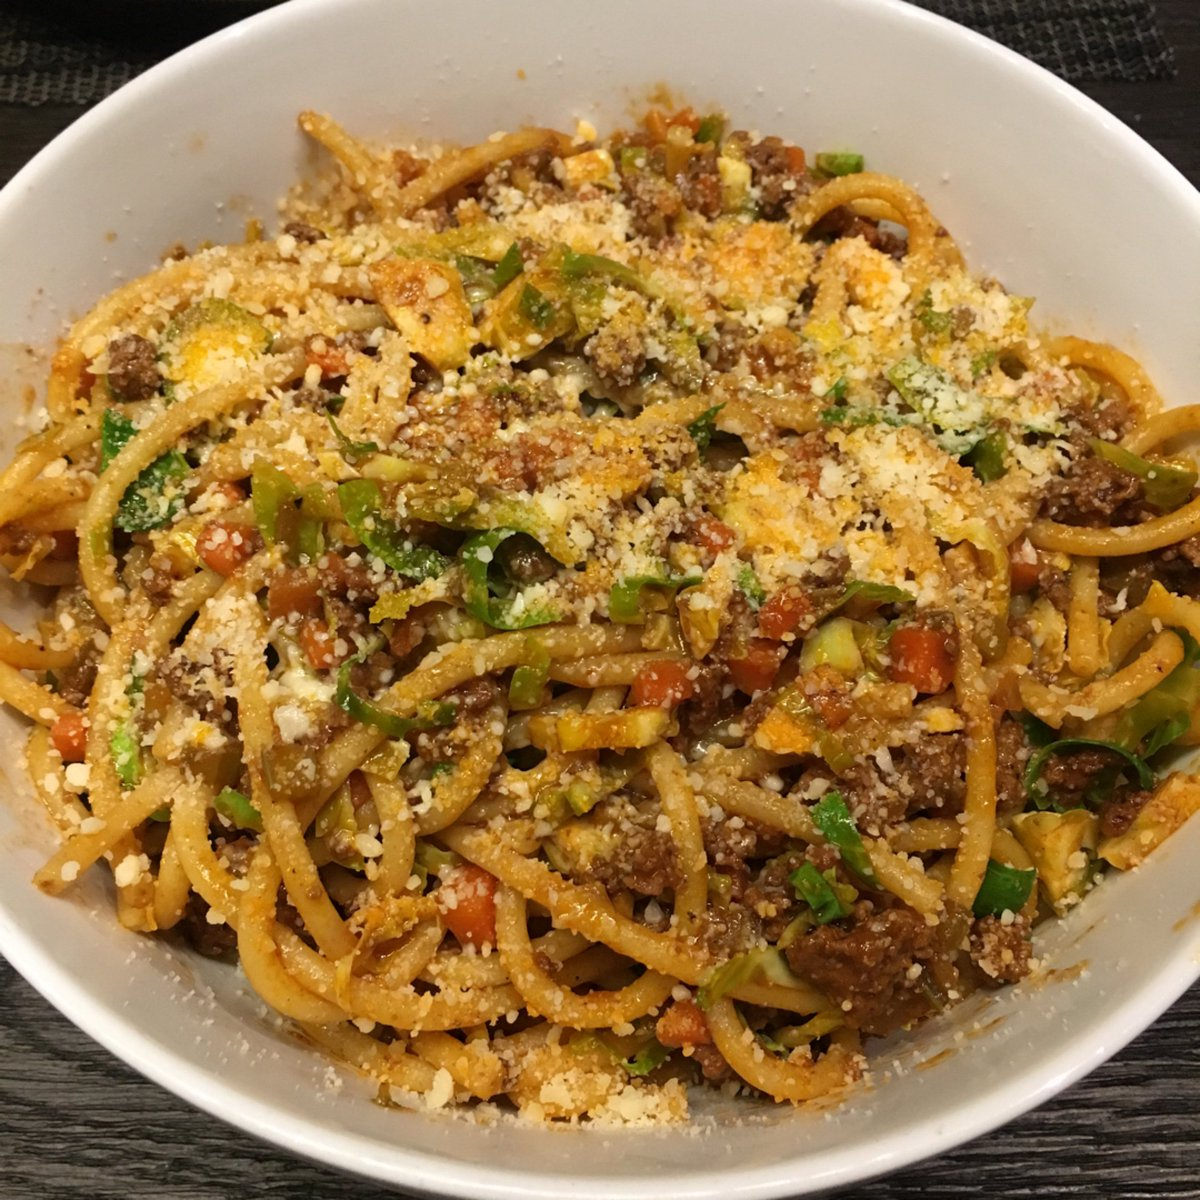 Blue apron bucatini - Matt Salzberg On Twitter Bucatini Pasta Bolognese With Brussels Sprouts Blueapron Https T Co Z3ql6xg2ng